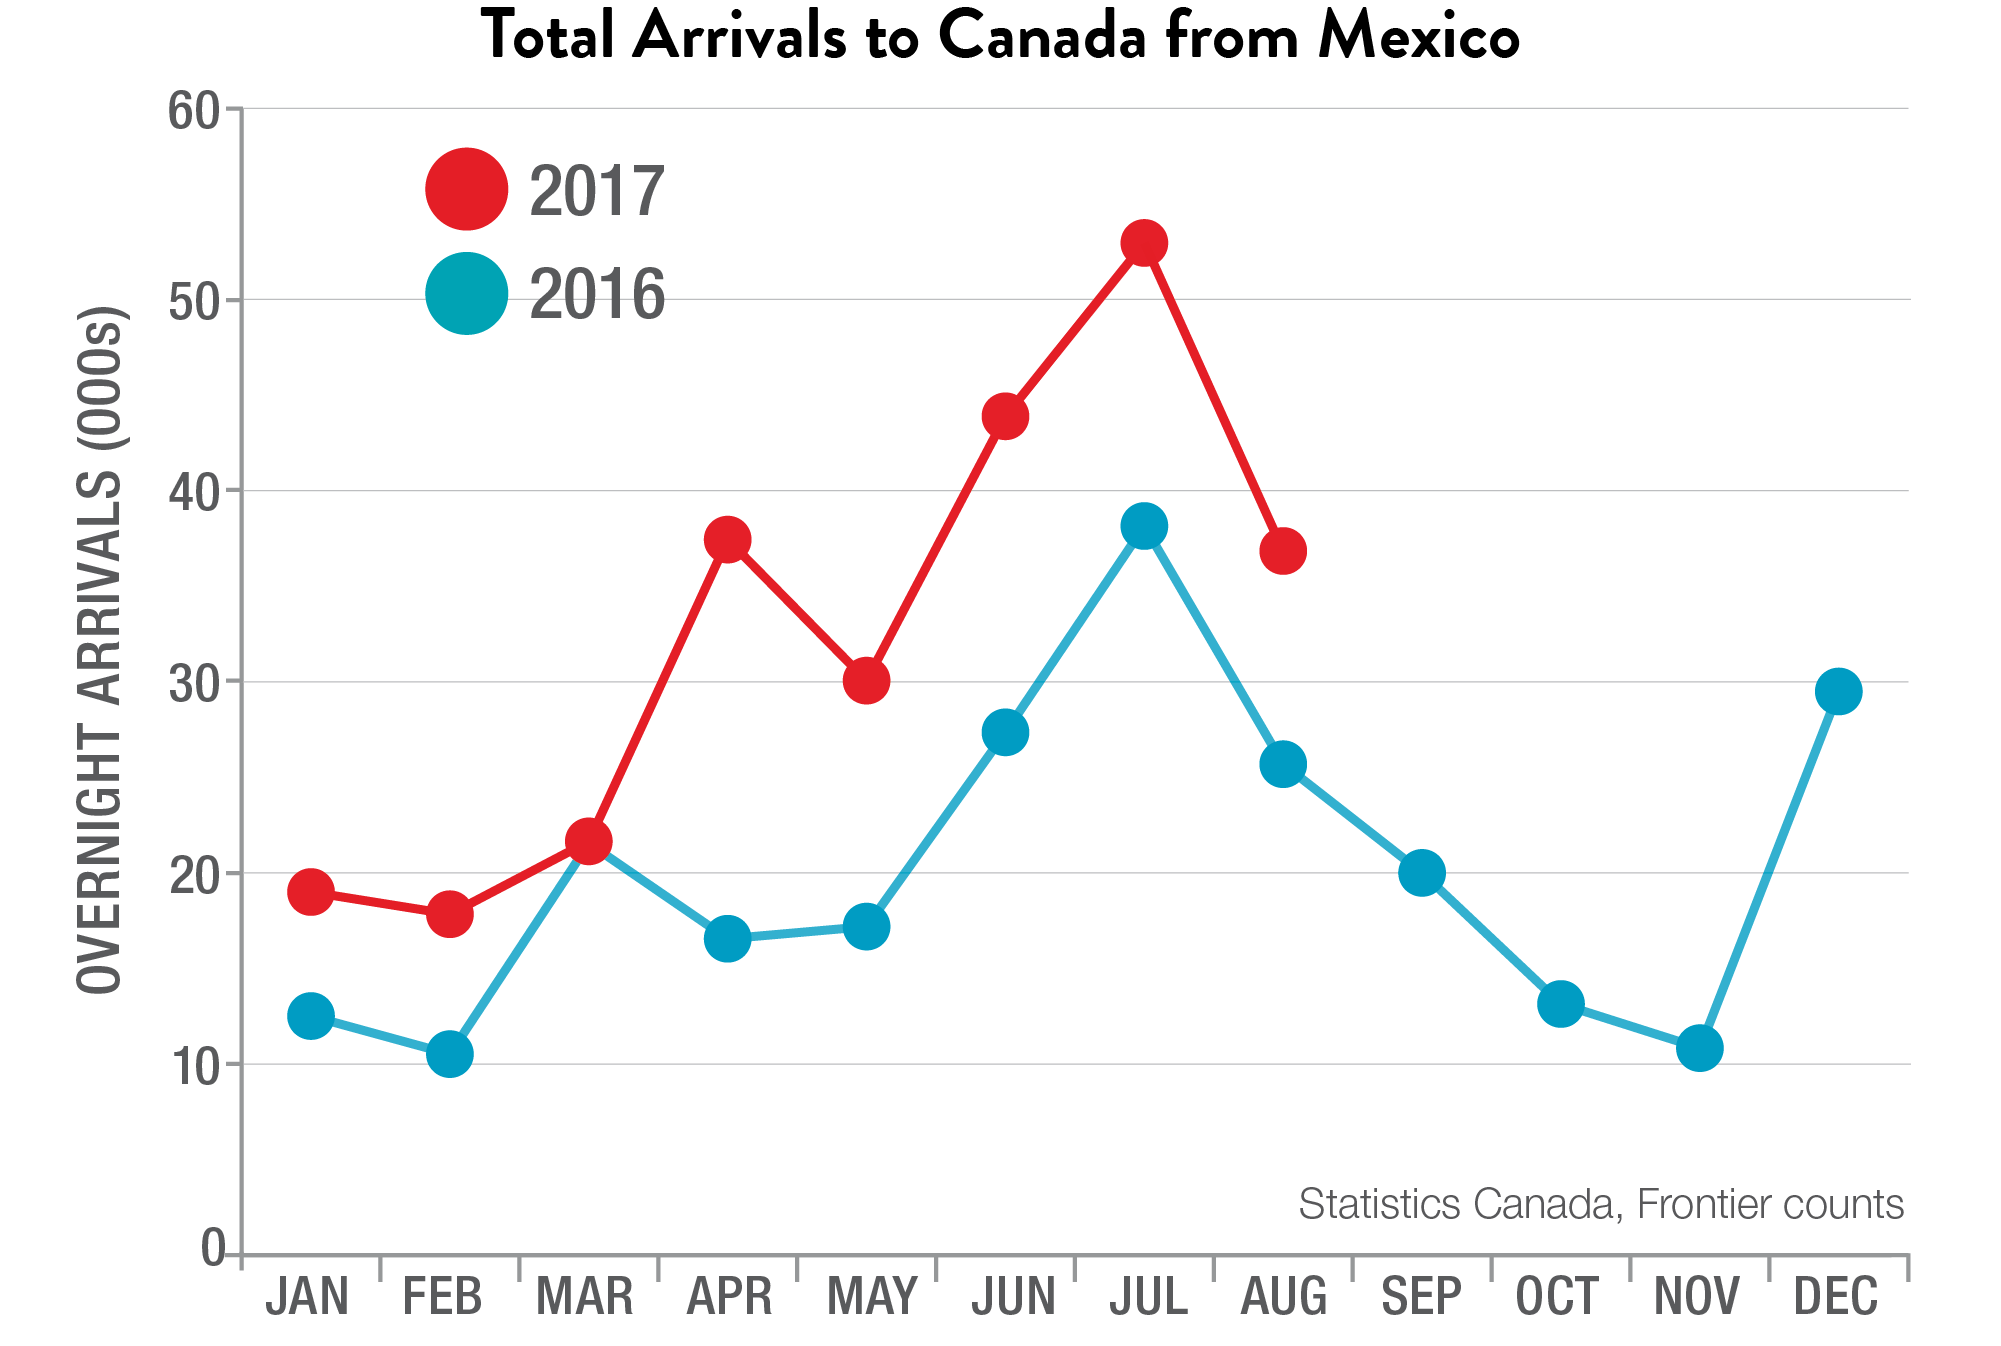 Total Arrivals to Canada from Mexico